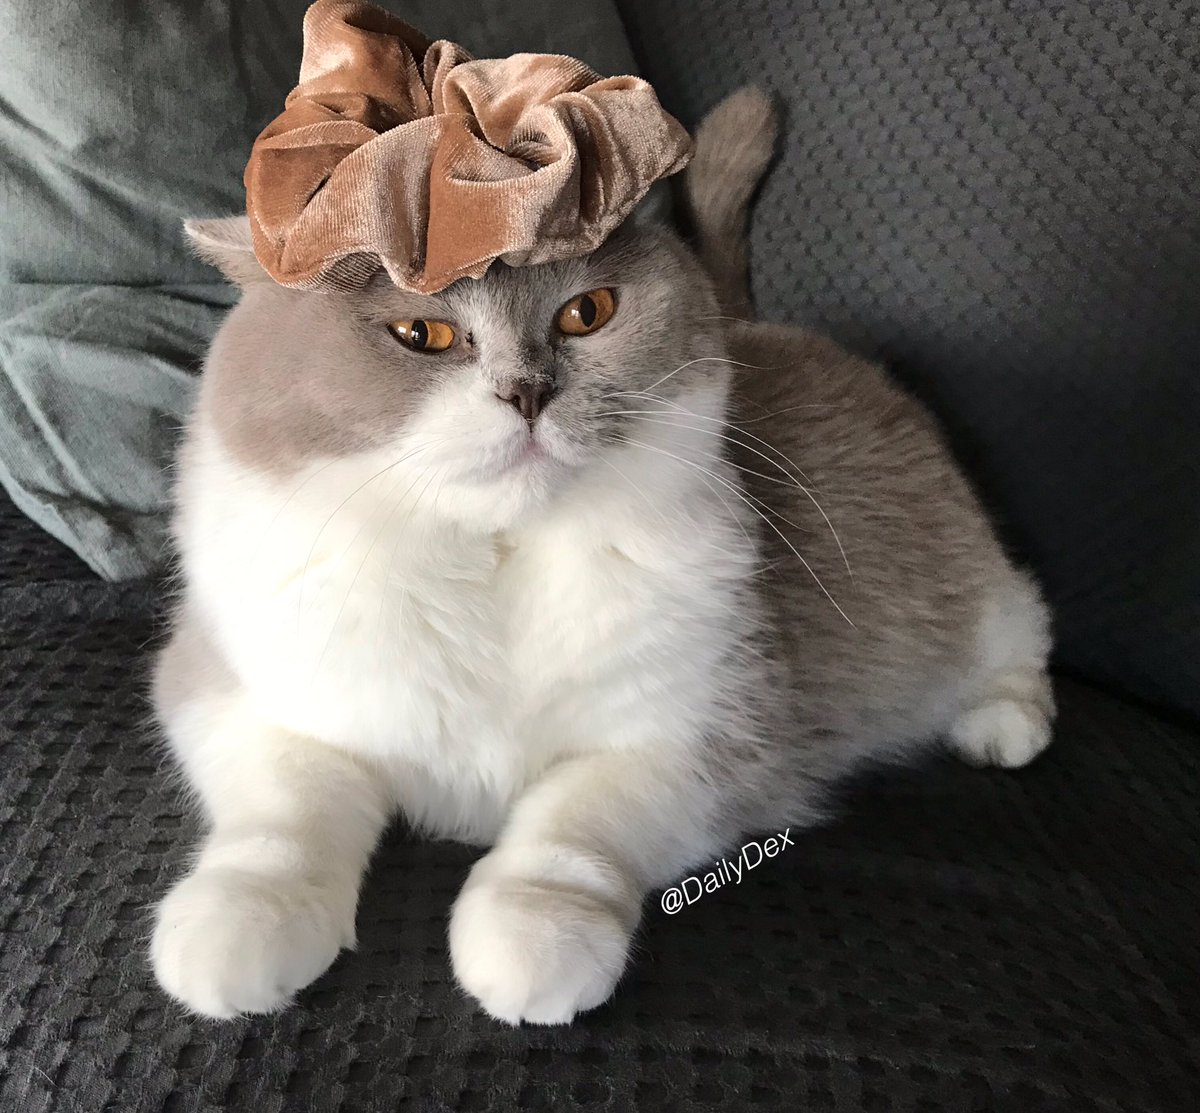 Trying my human's scrunchie for a crown 👑 Don't I look regal? A little lion king maybe? 🦁😹 #SundayFunday #SundayThoughts #CatsOfTwitter #SundayFeels  #SundayMotivation #CatLife https://t.co/XZgjD5JxTS